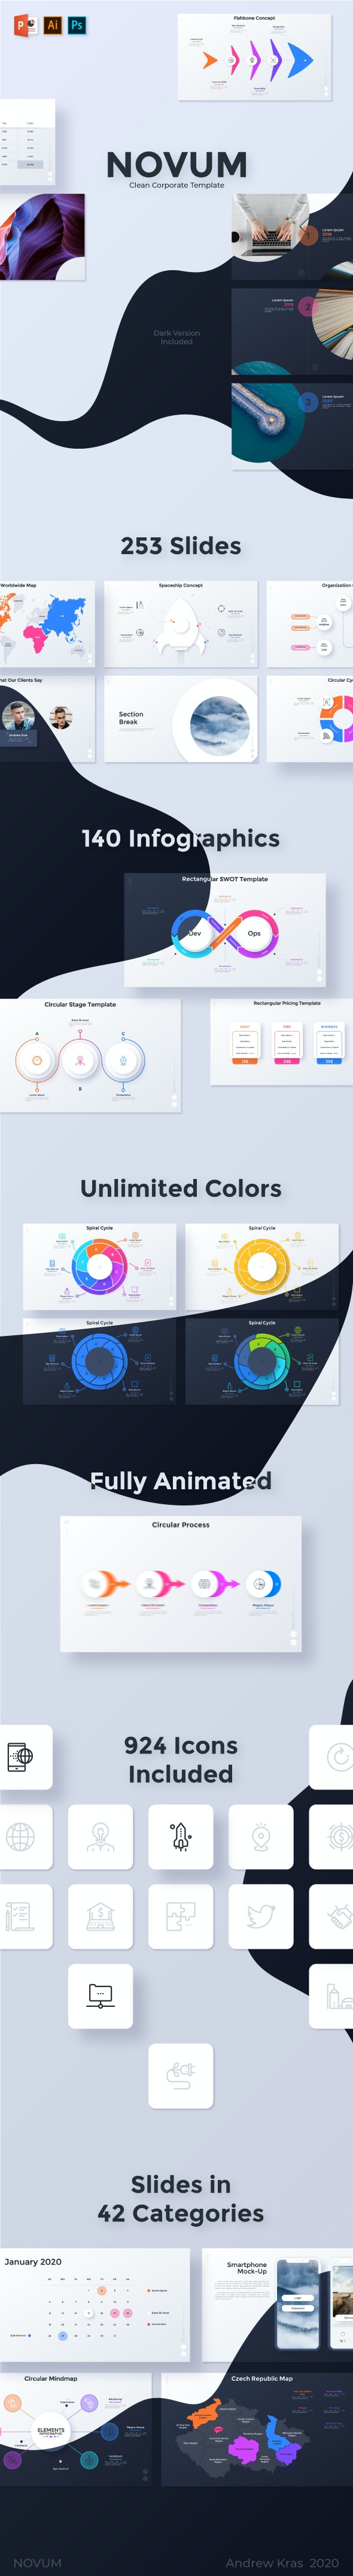 Novum Slides For Powerpoint - Business PowerPoint Templates